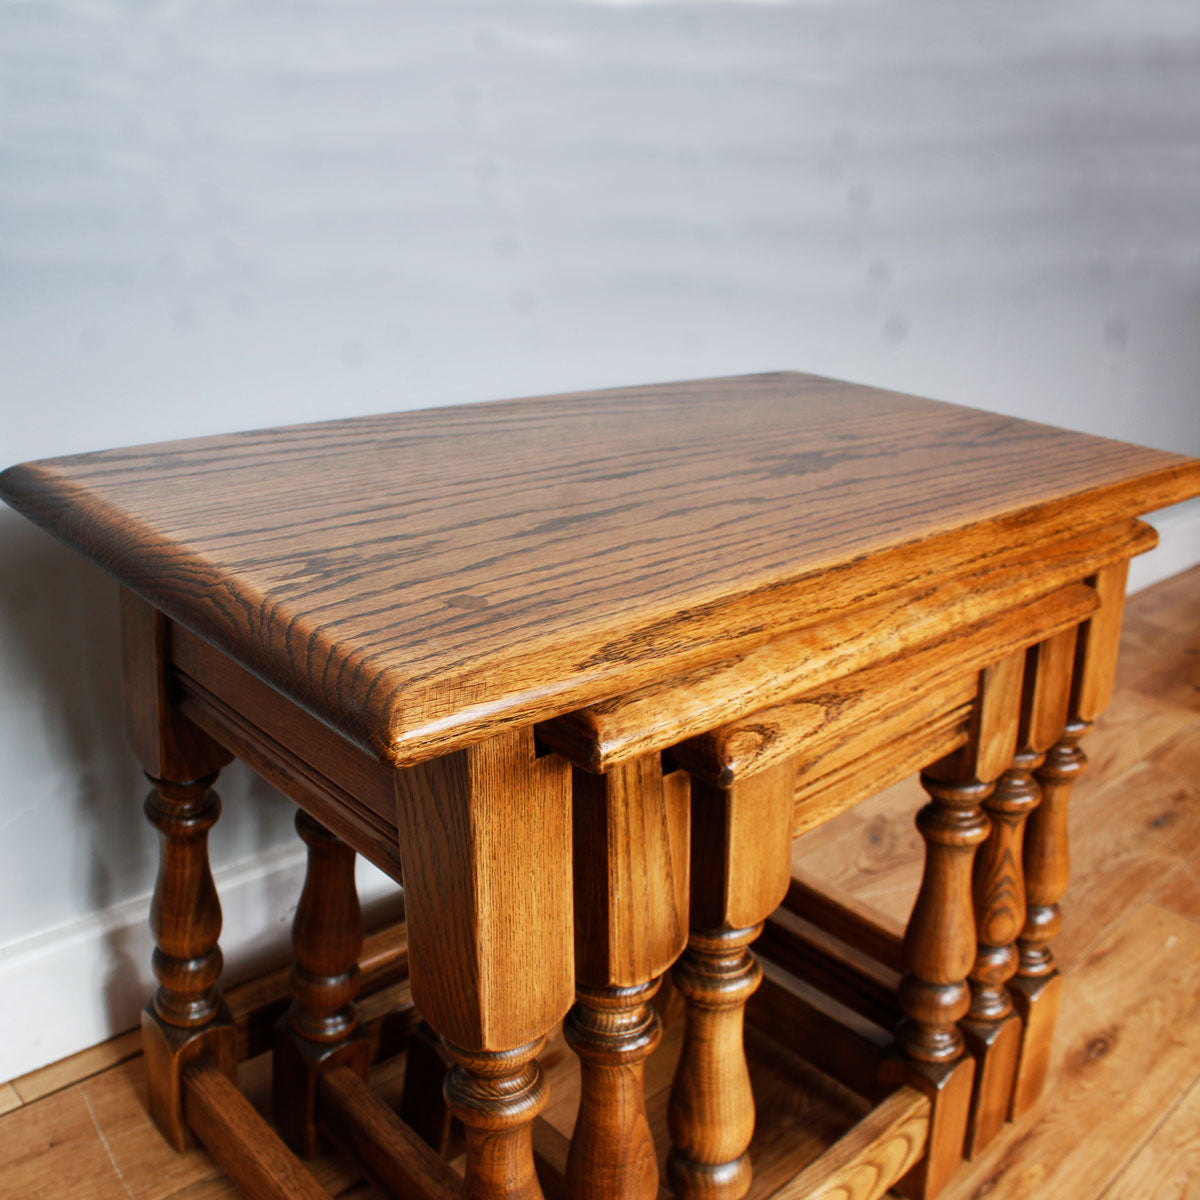 Sturdy Oak Nest of Tables